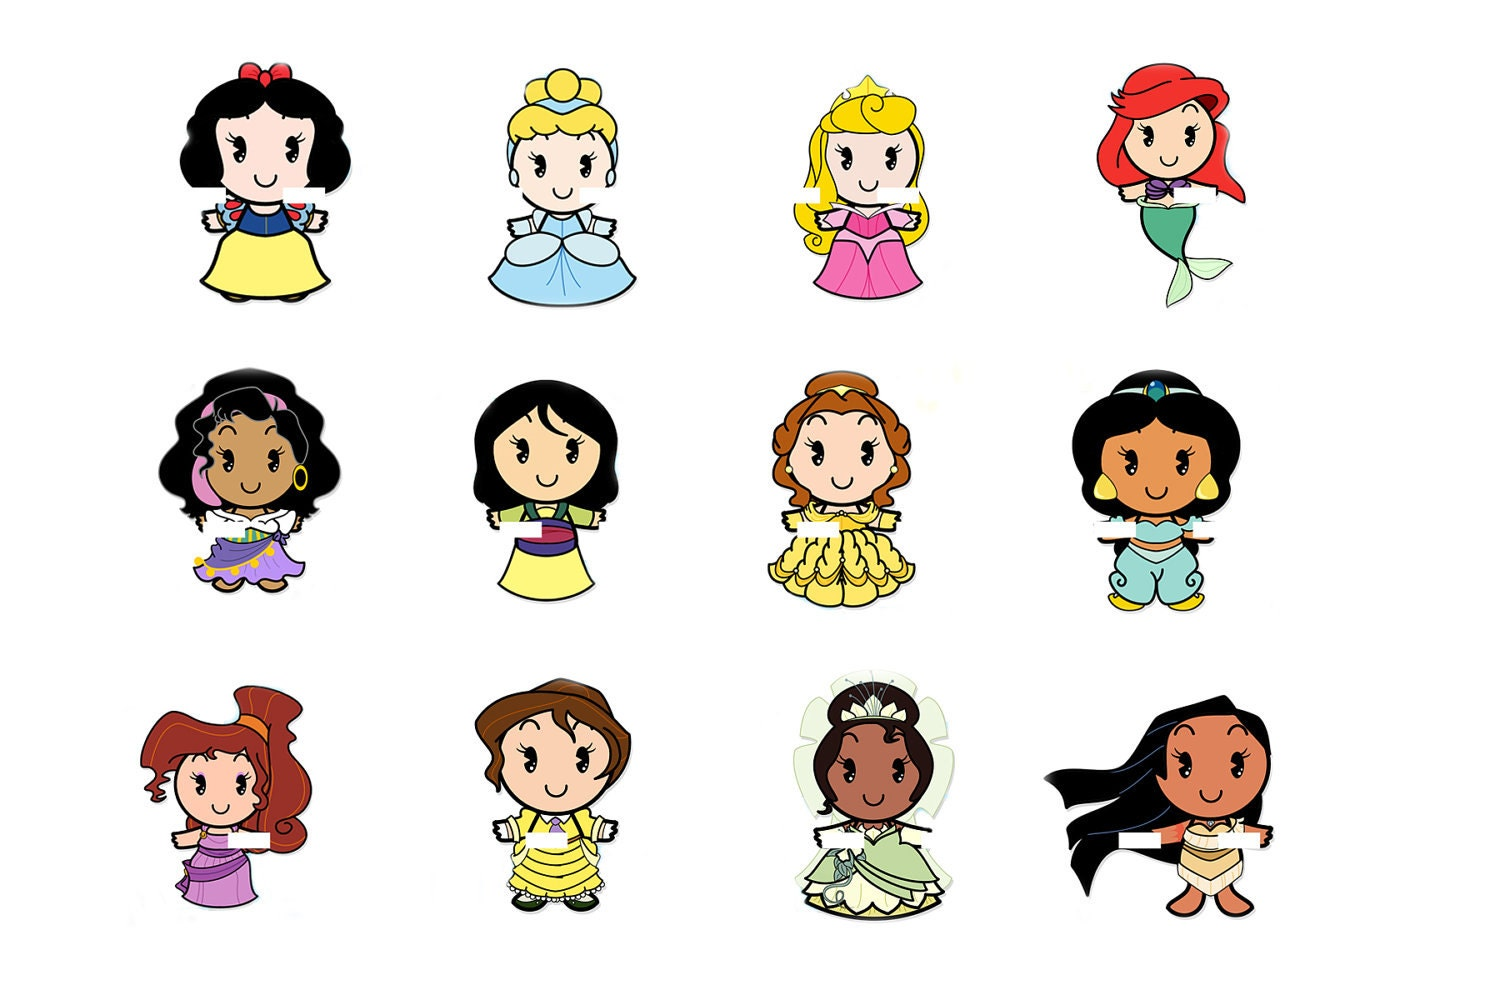 Disney Princess Cuties Scrabble Tile Image Bottlecap Disney Cuties Princess Printable